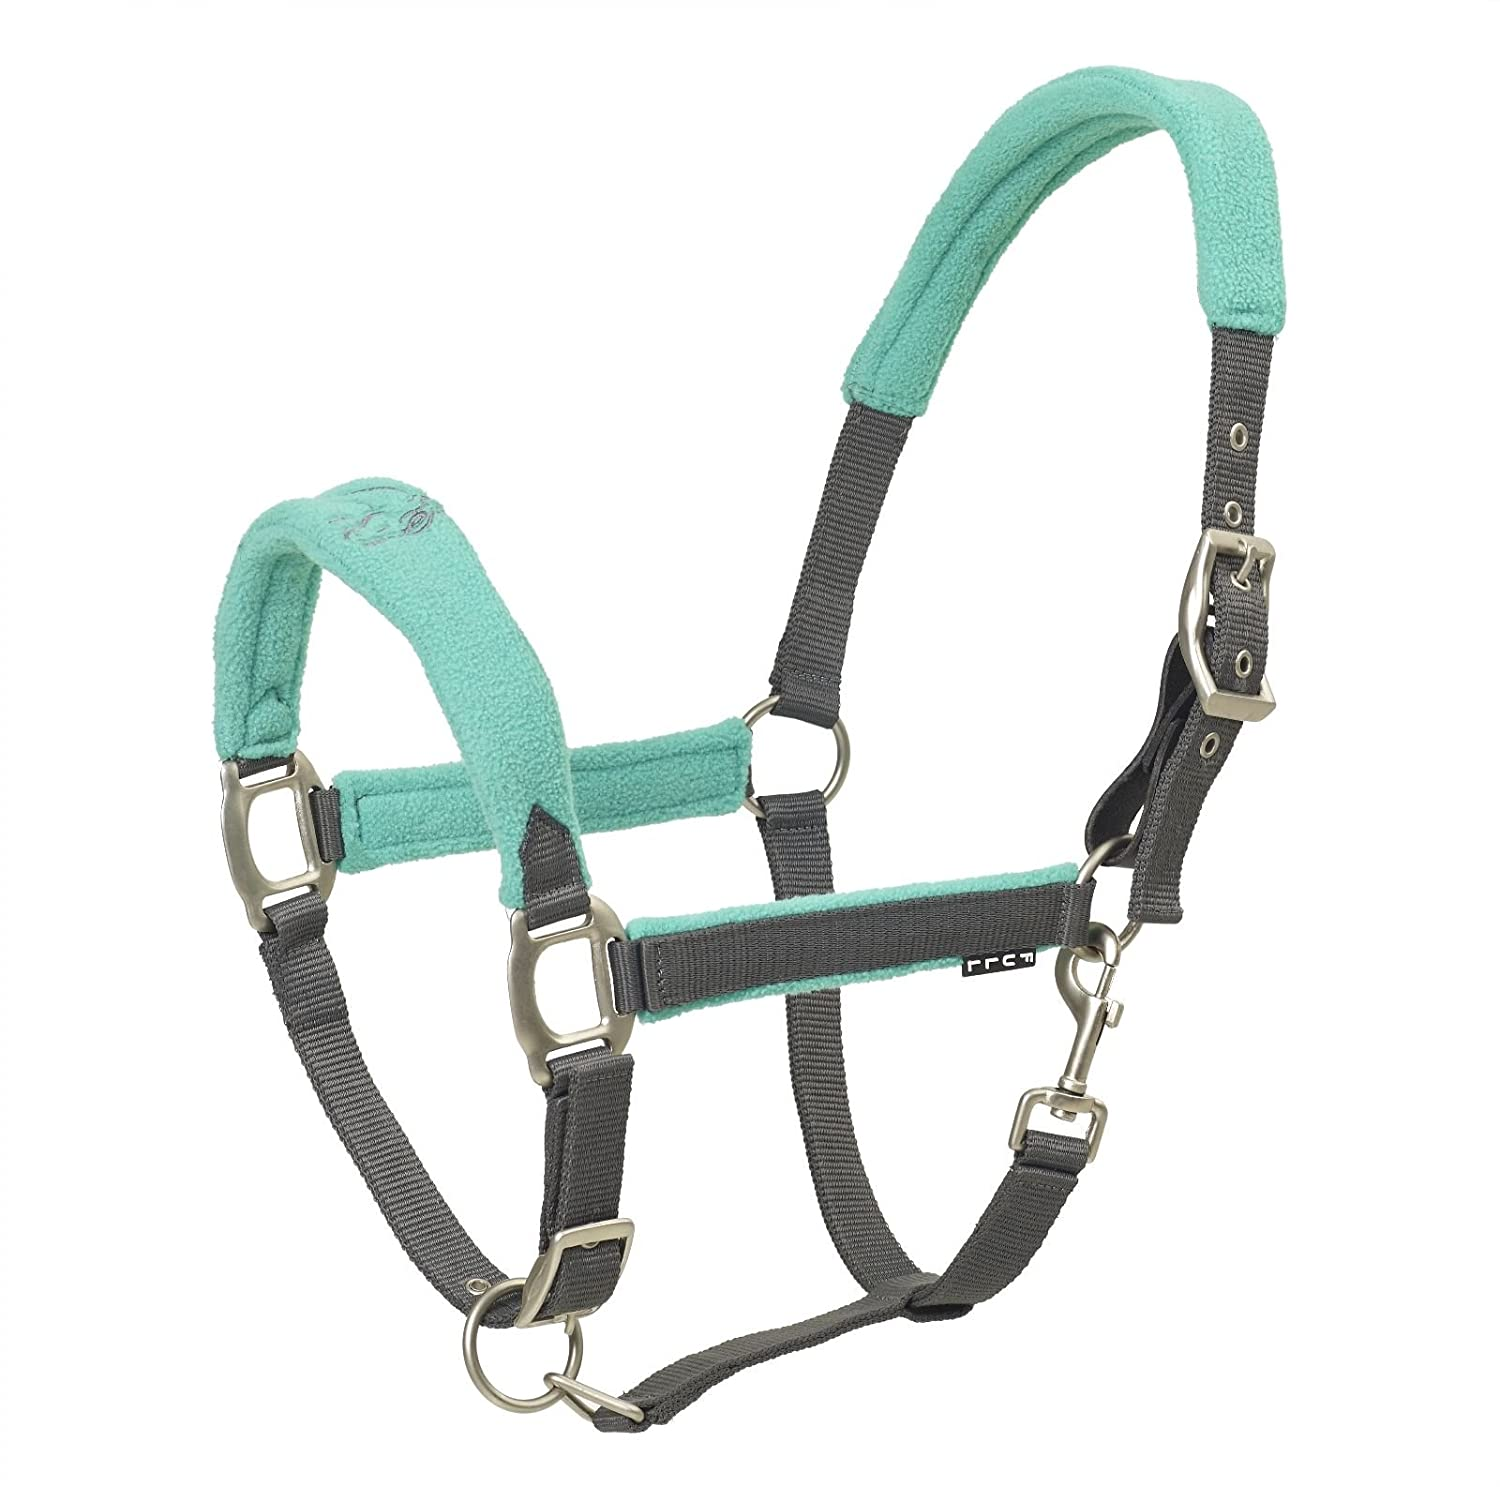 Centaur Fleece Cushion Breakaway Halter Size Cob color Grey Aqua